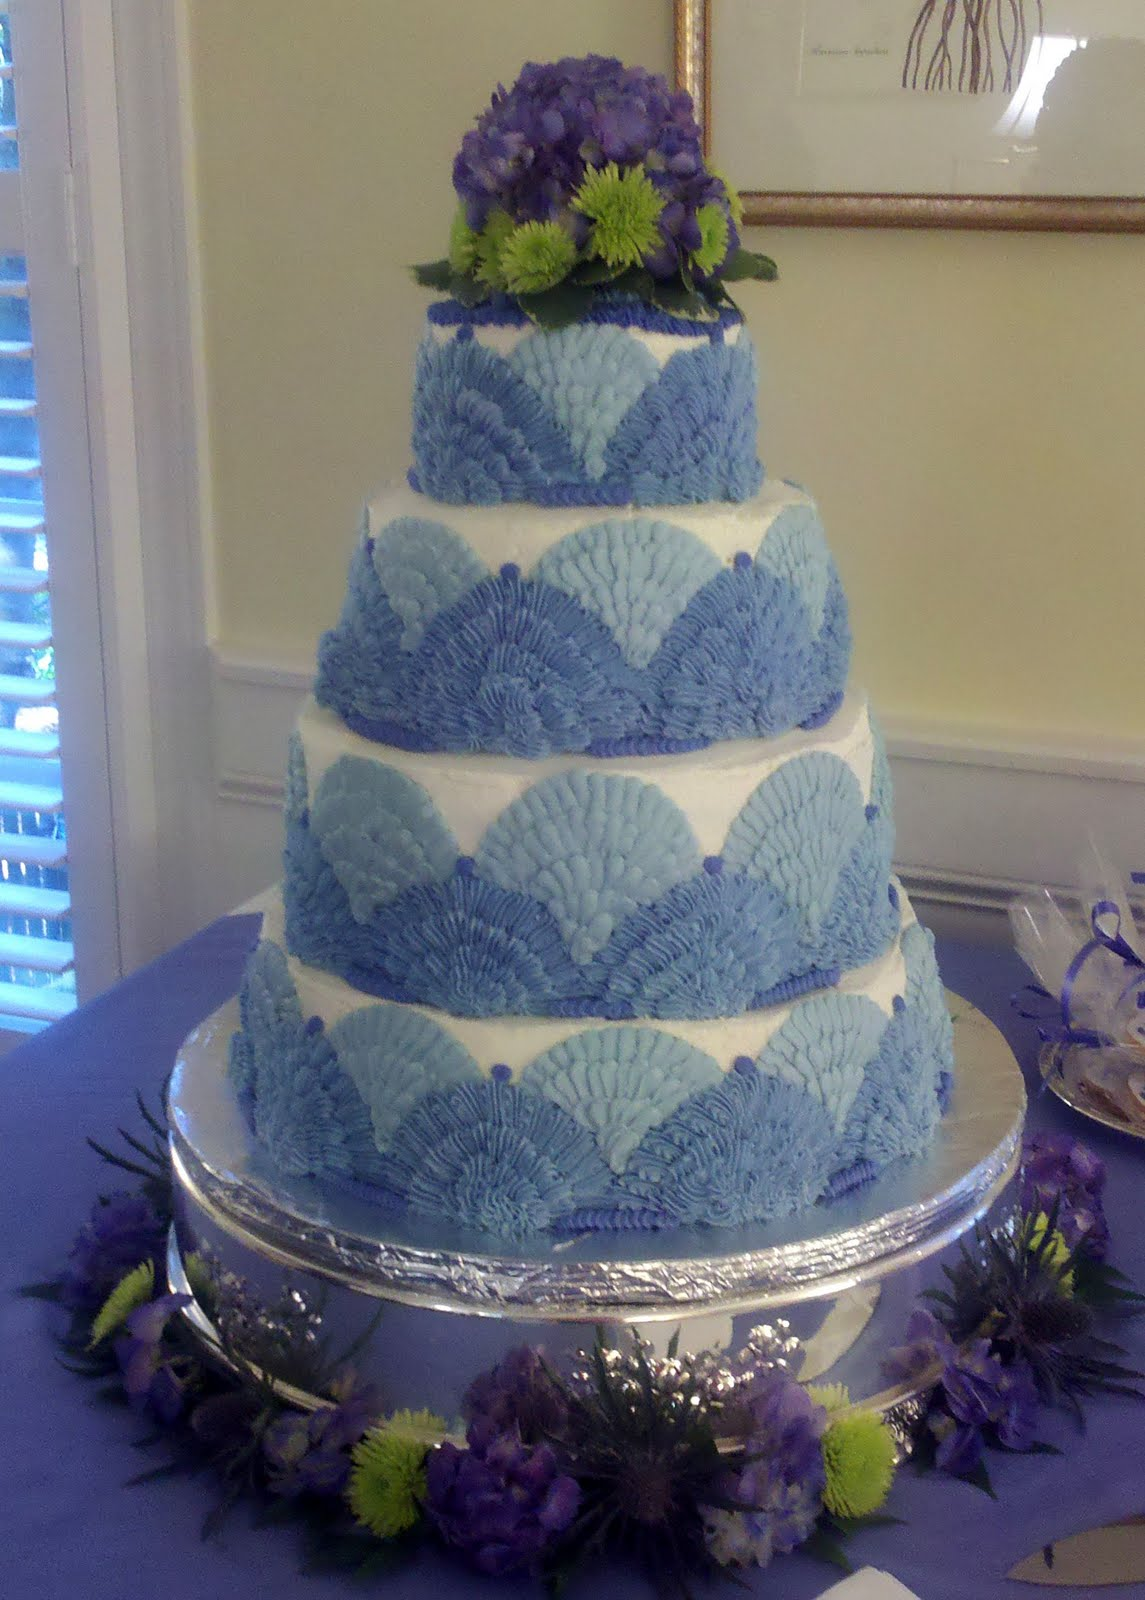 jamaican wedding cake - photo #29